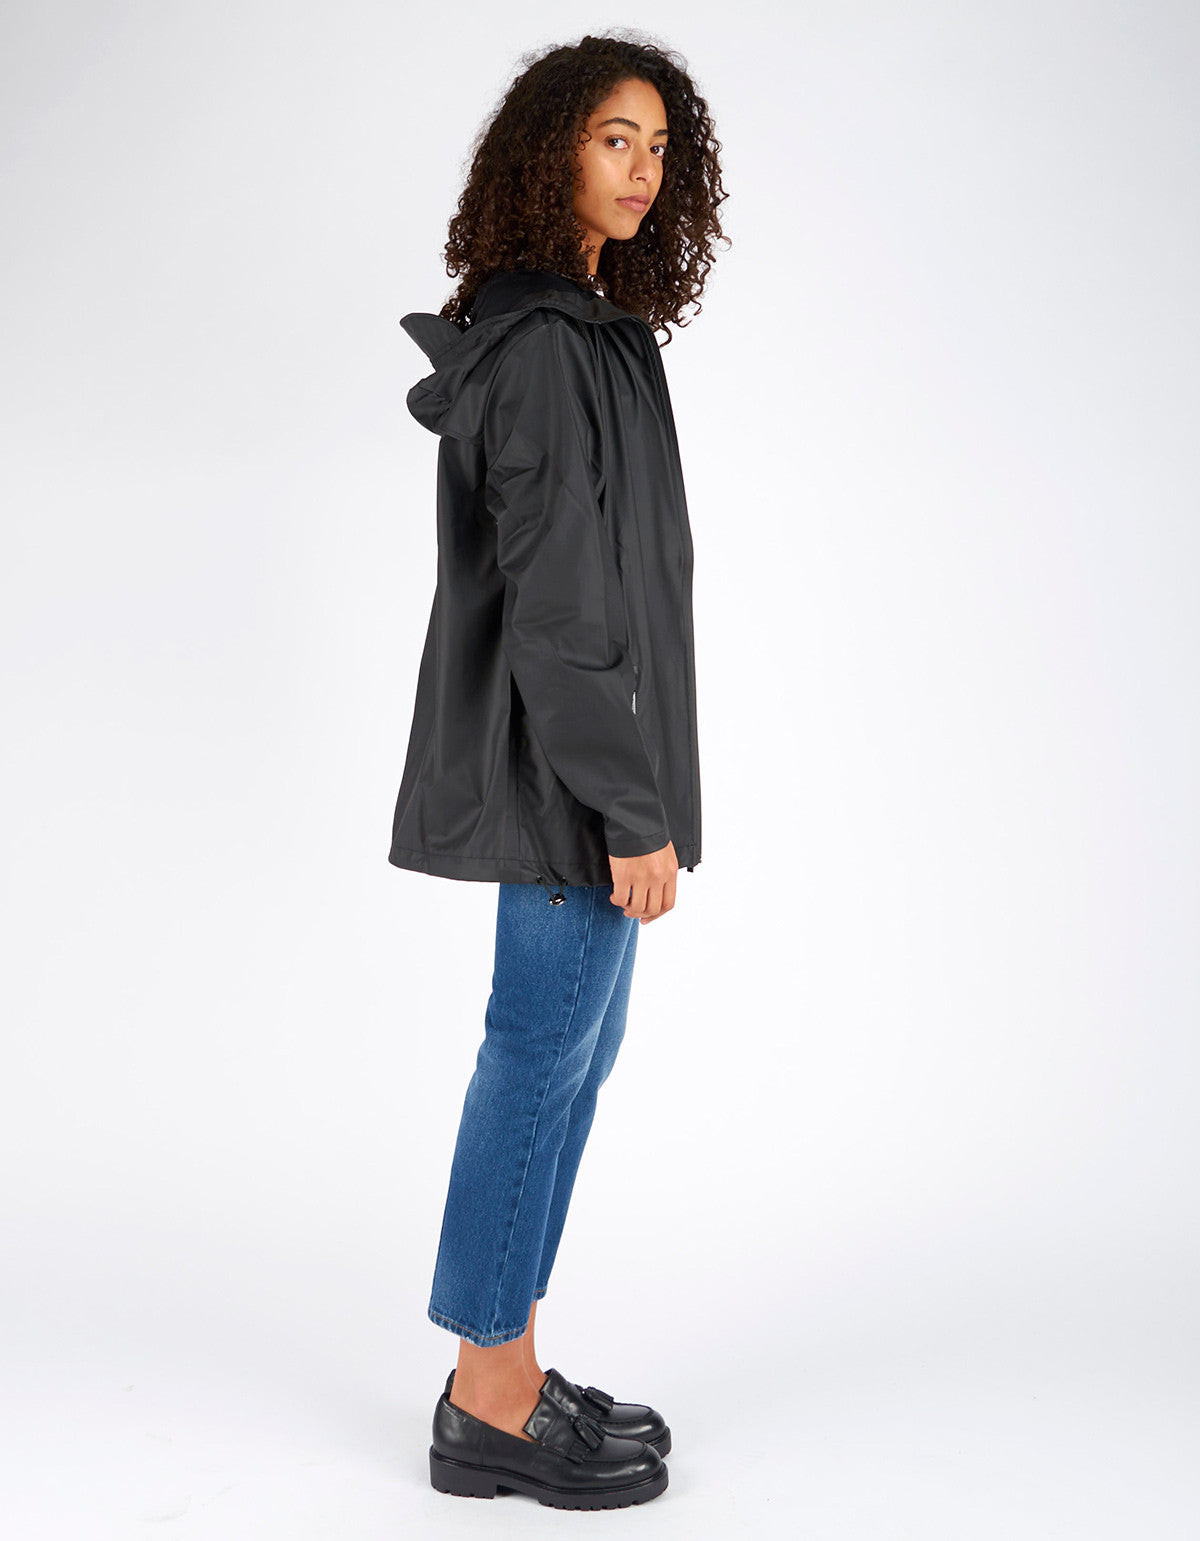 Rains Breaker Jacket Women's Black - Still Life - 3